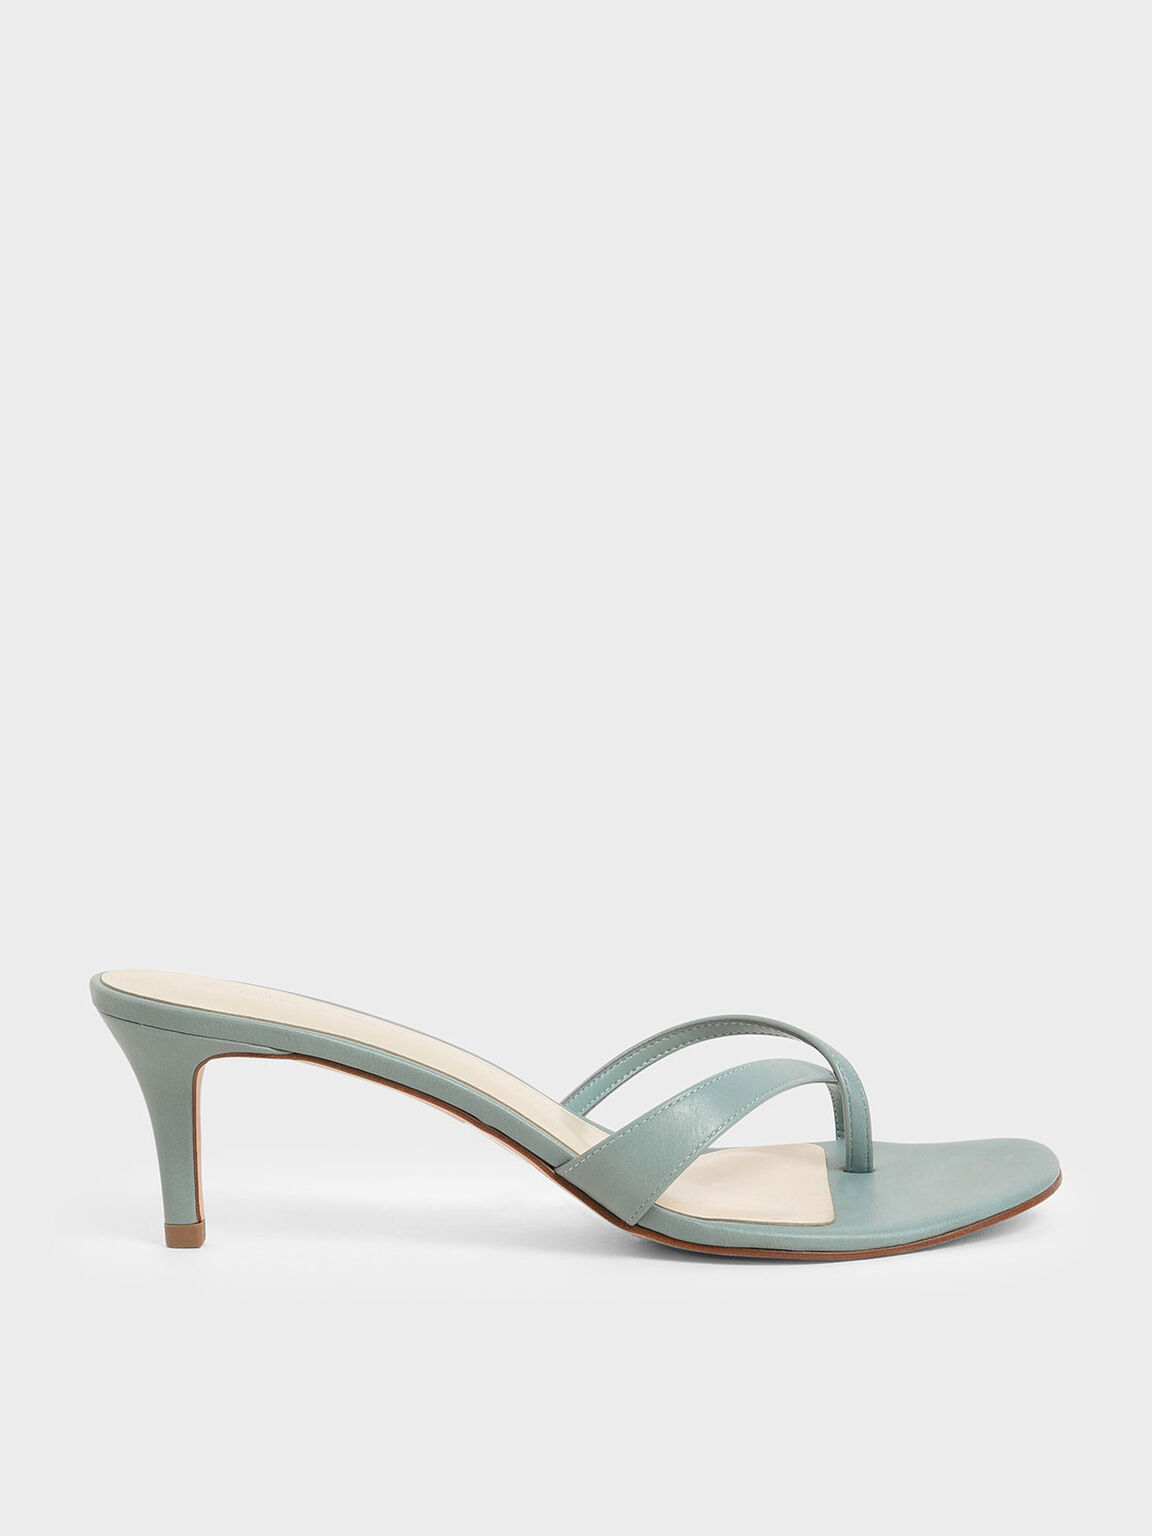 Toe Strap Heeled Sandals, Green, hi-res